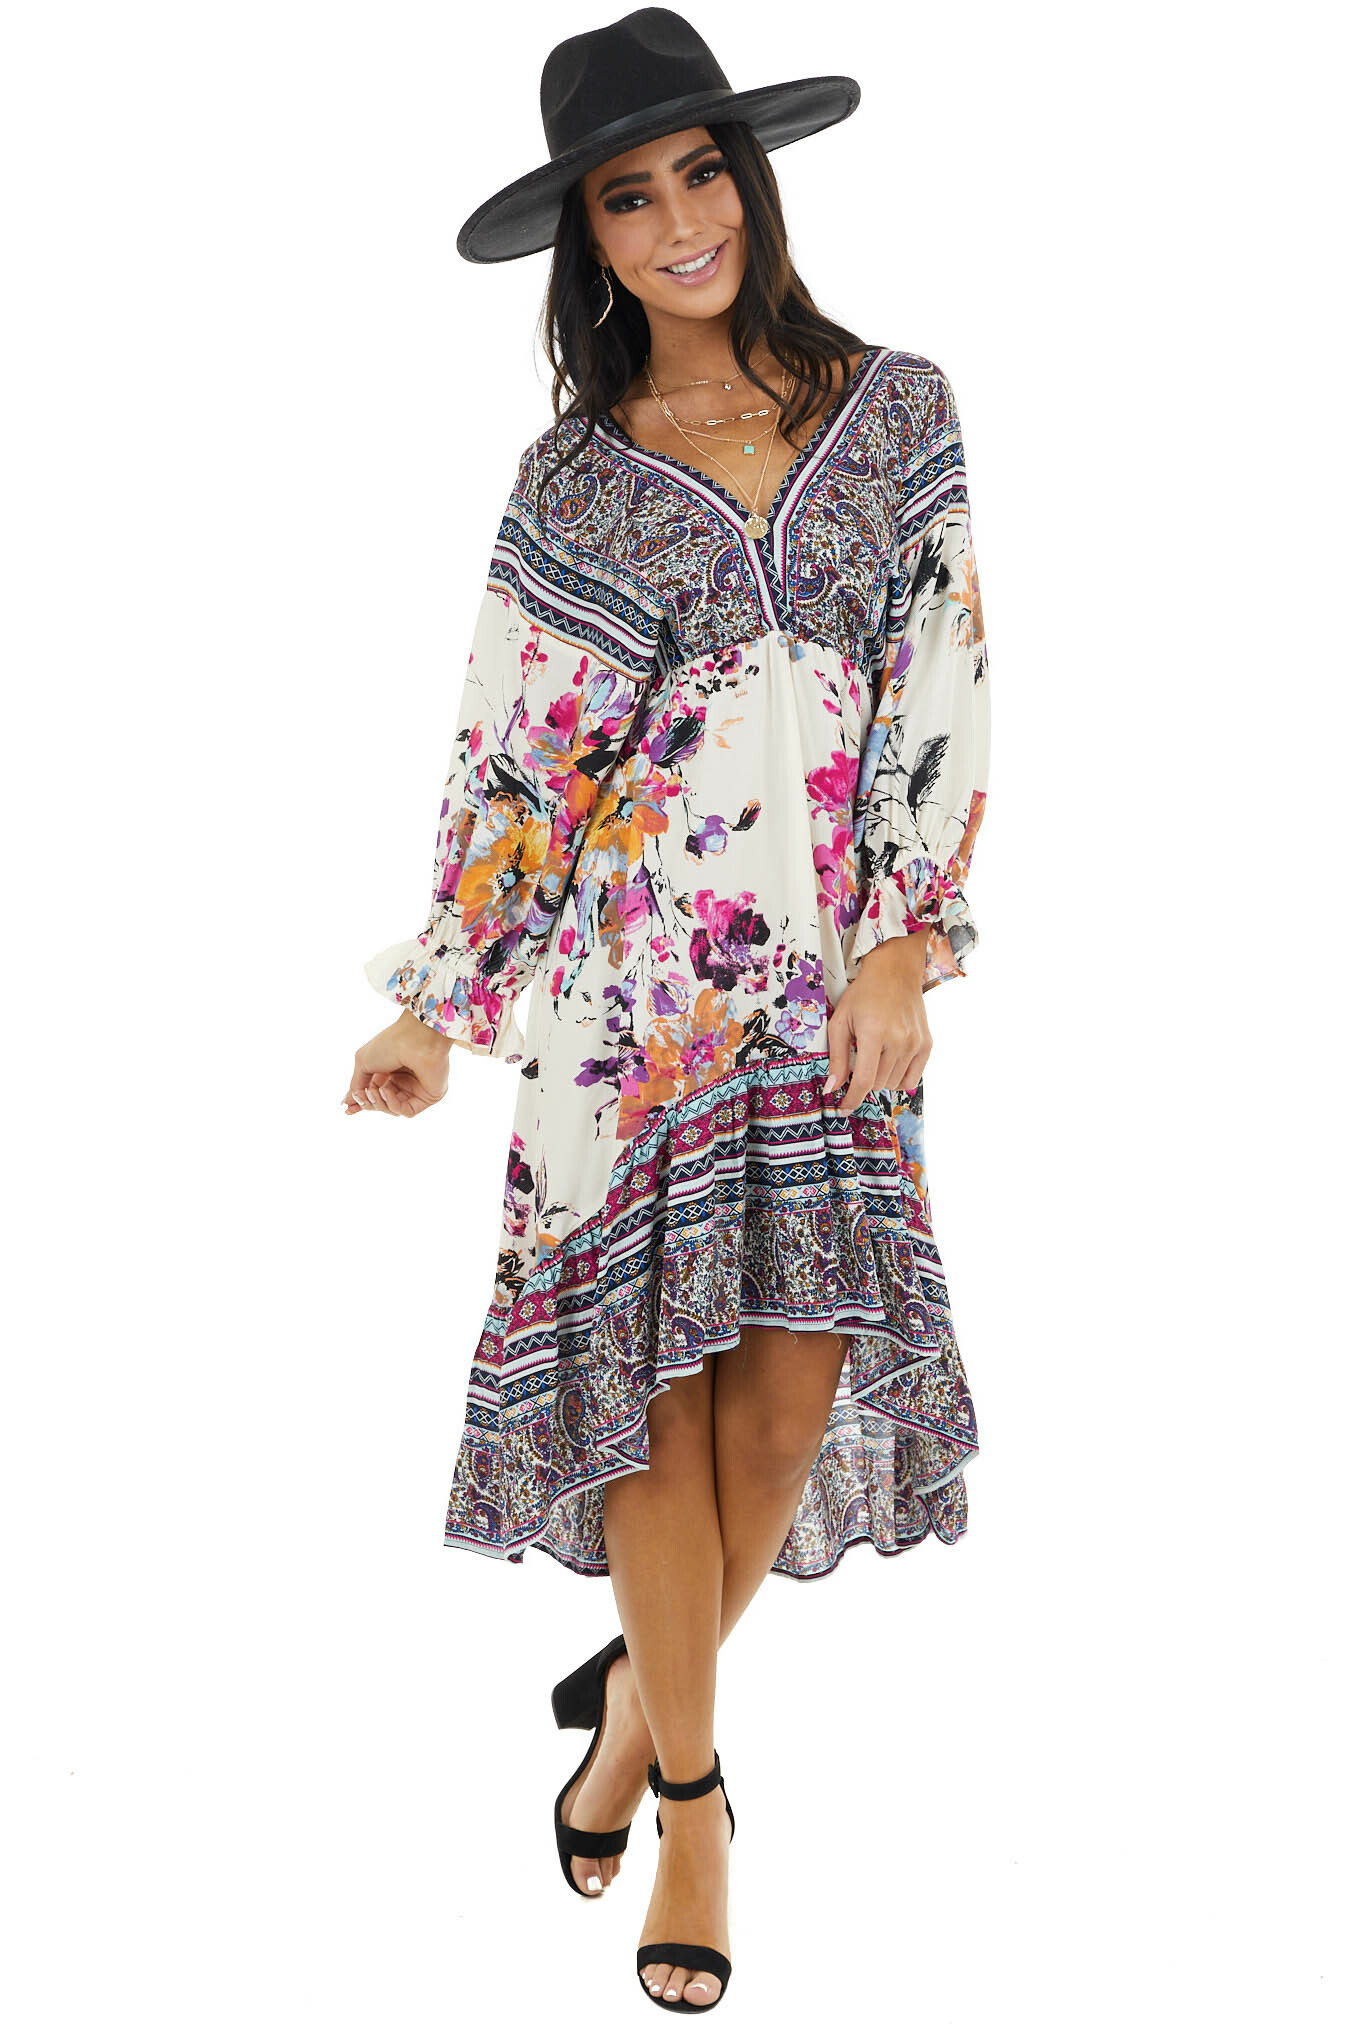 Off White Floral Print Dress with Multiprint Contrasts